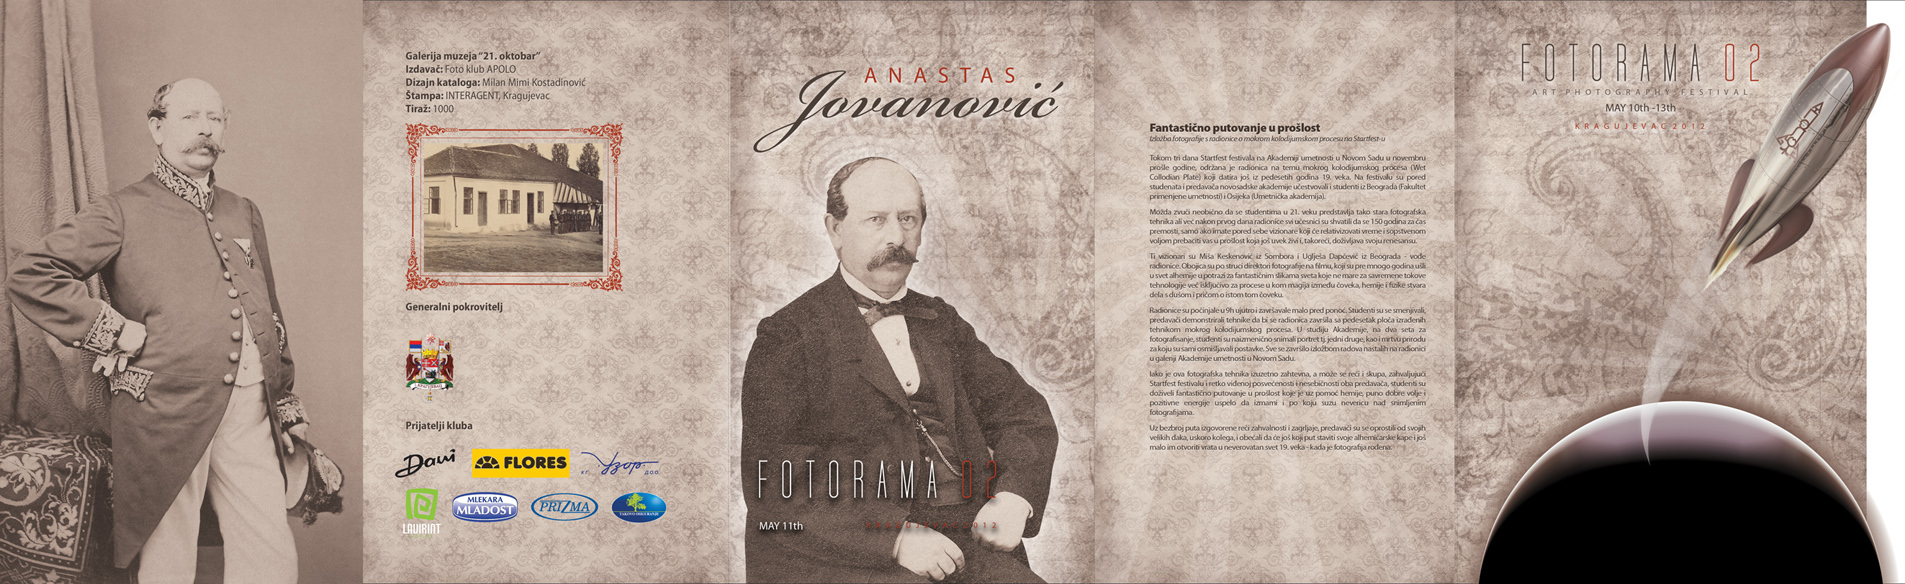 Opening of photo exhibition of old photographs from Kragujevac (19th and early 20th century), Anastas Jovanović